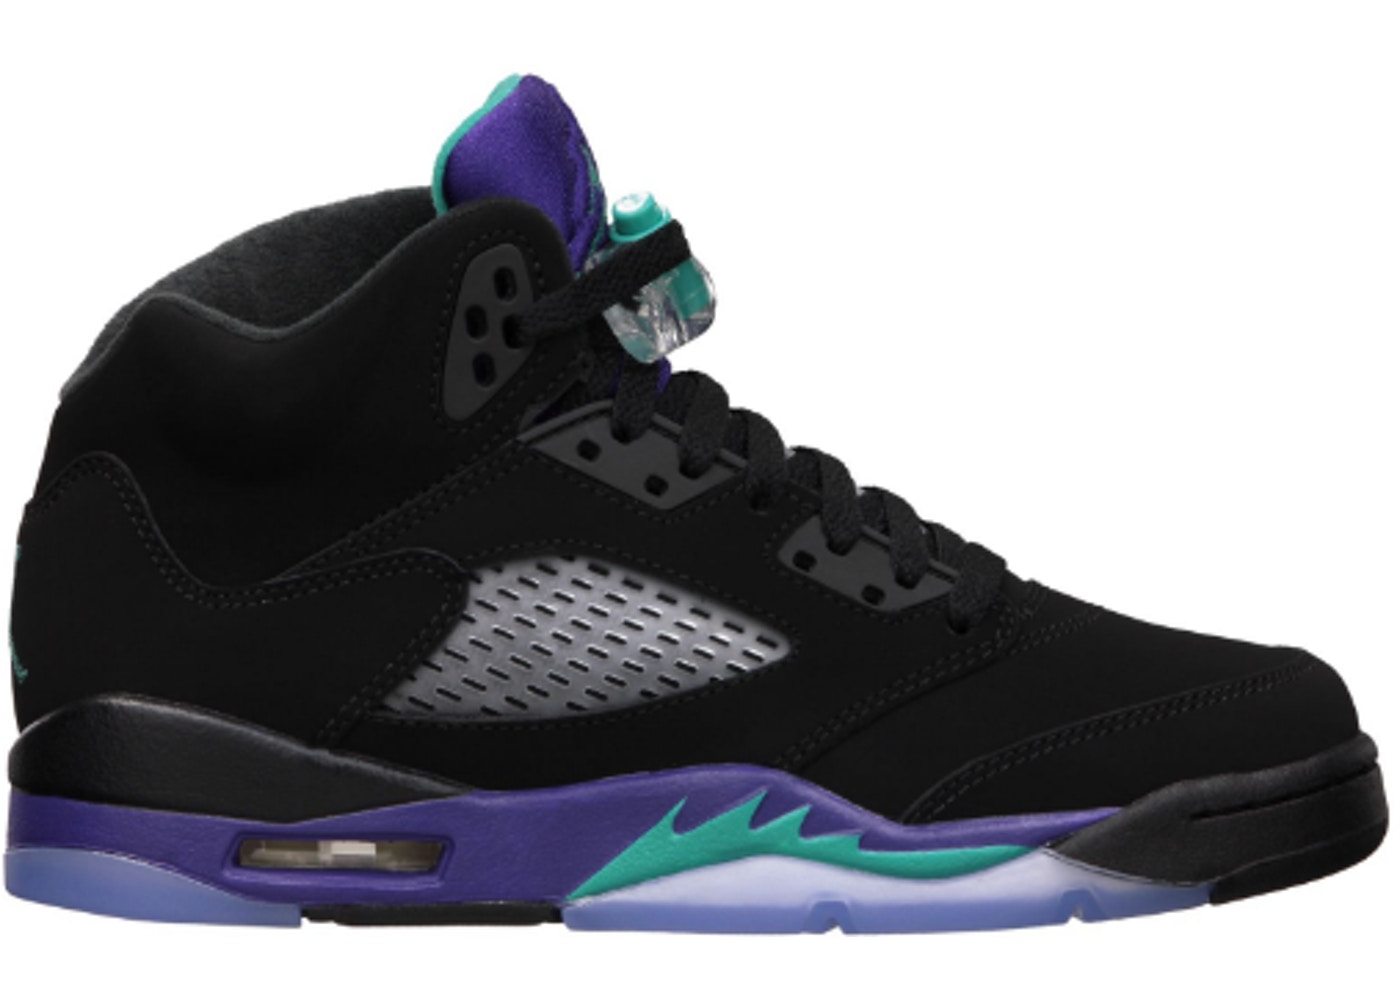 newest 4ea5e 3097f Jordan 5 Retro Black Grape 2013 (GS) - 440888-007